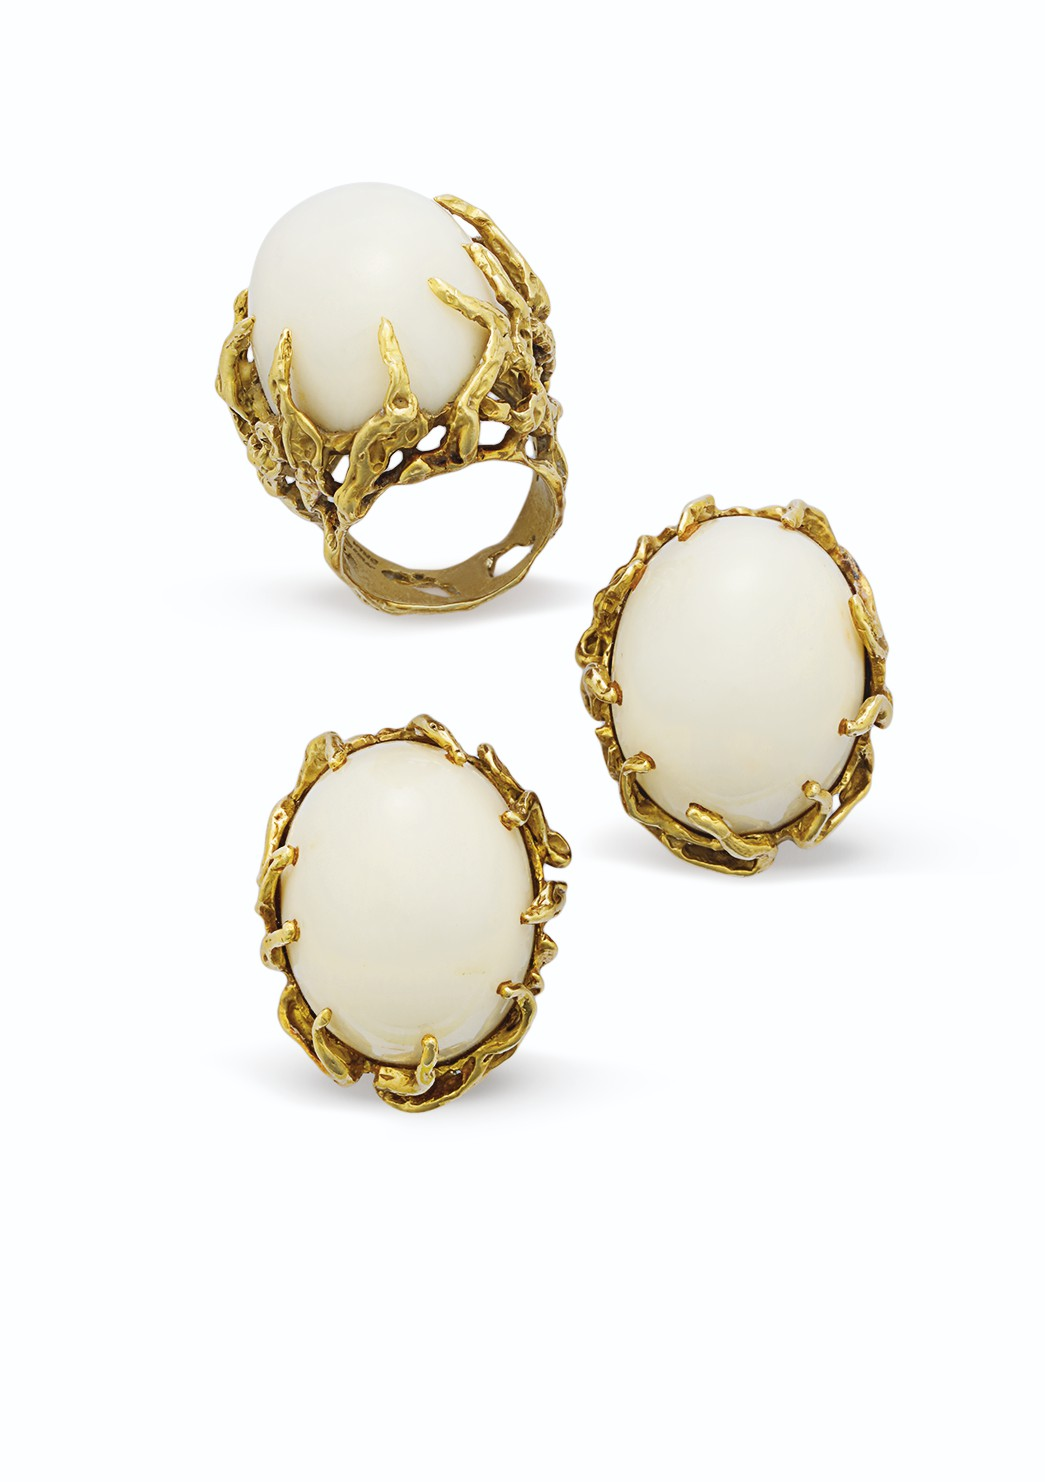 A SET OF WHITE CORAL AND GOLD JEWELRY